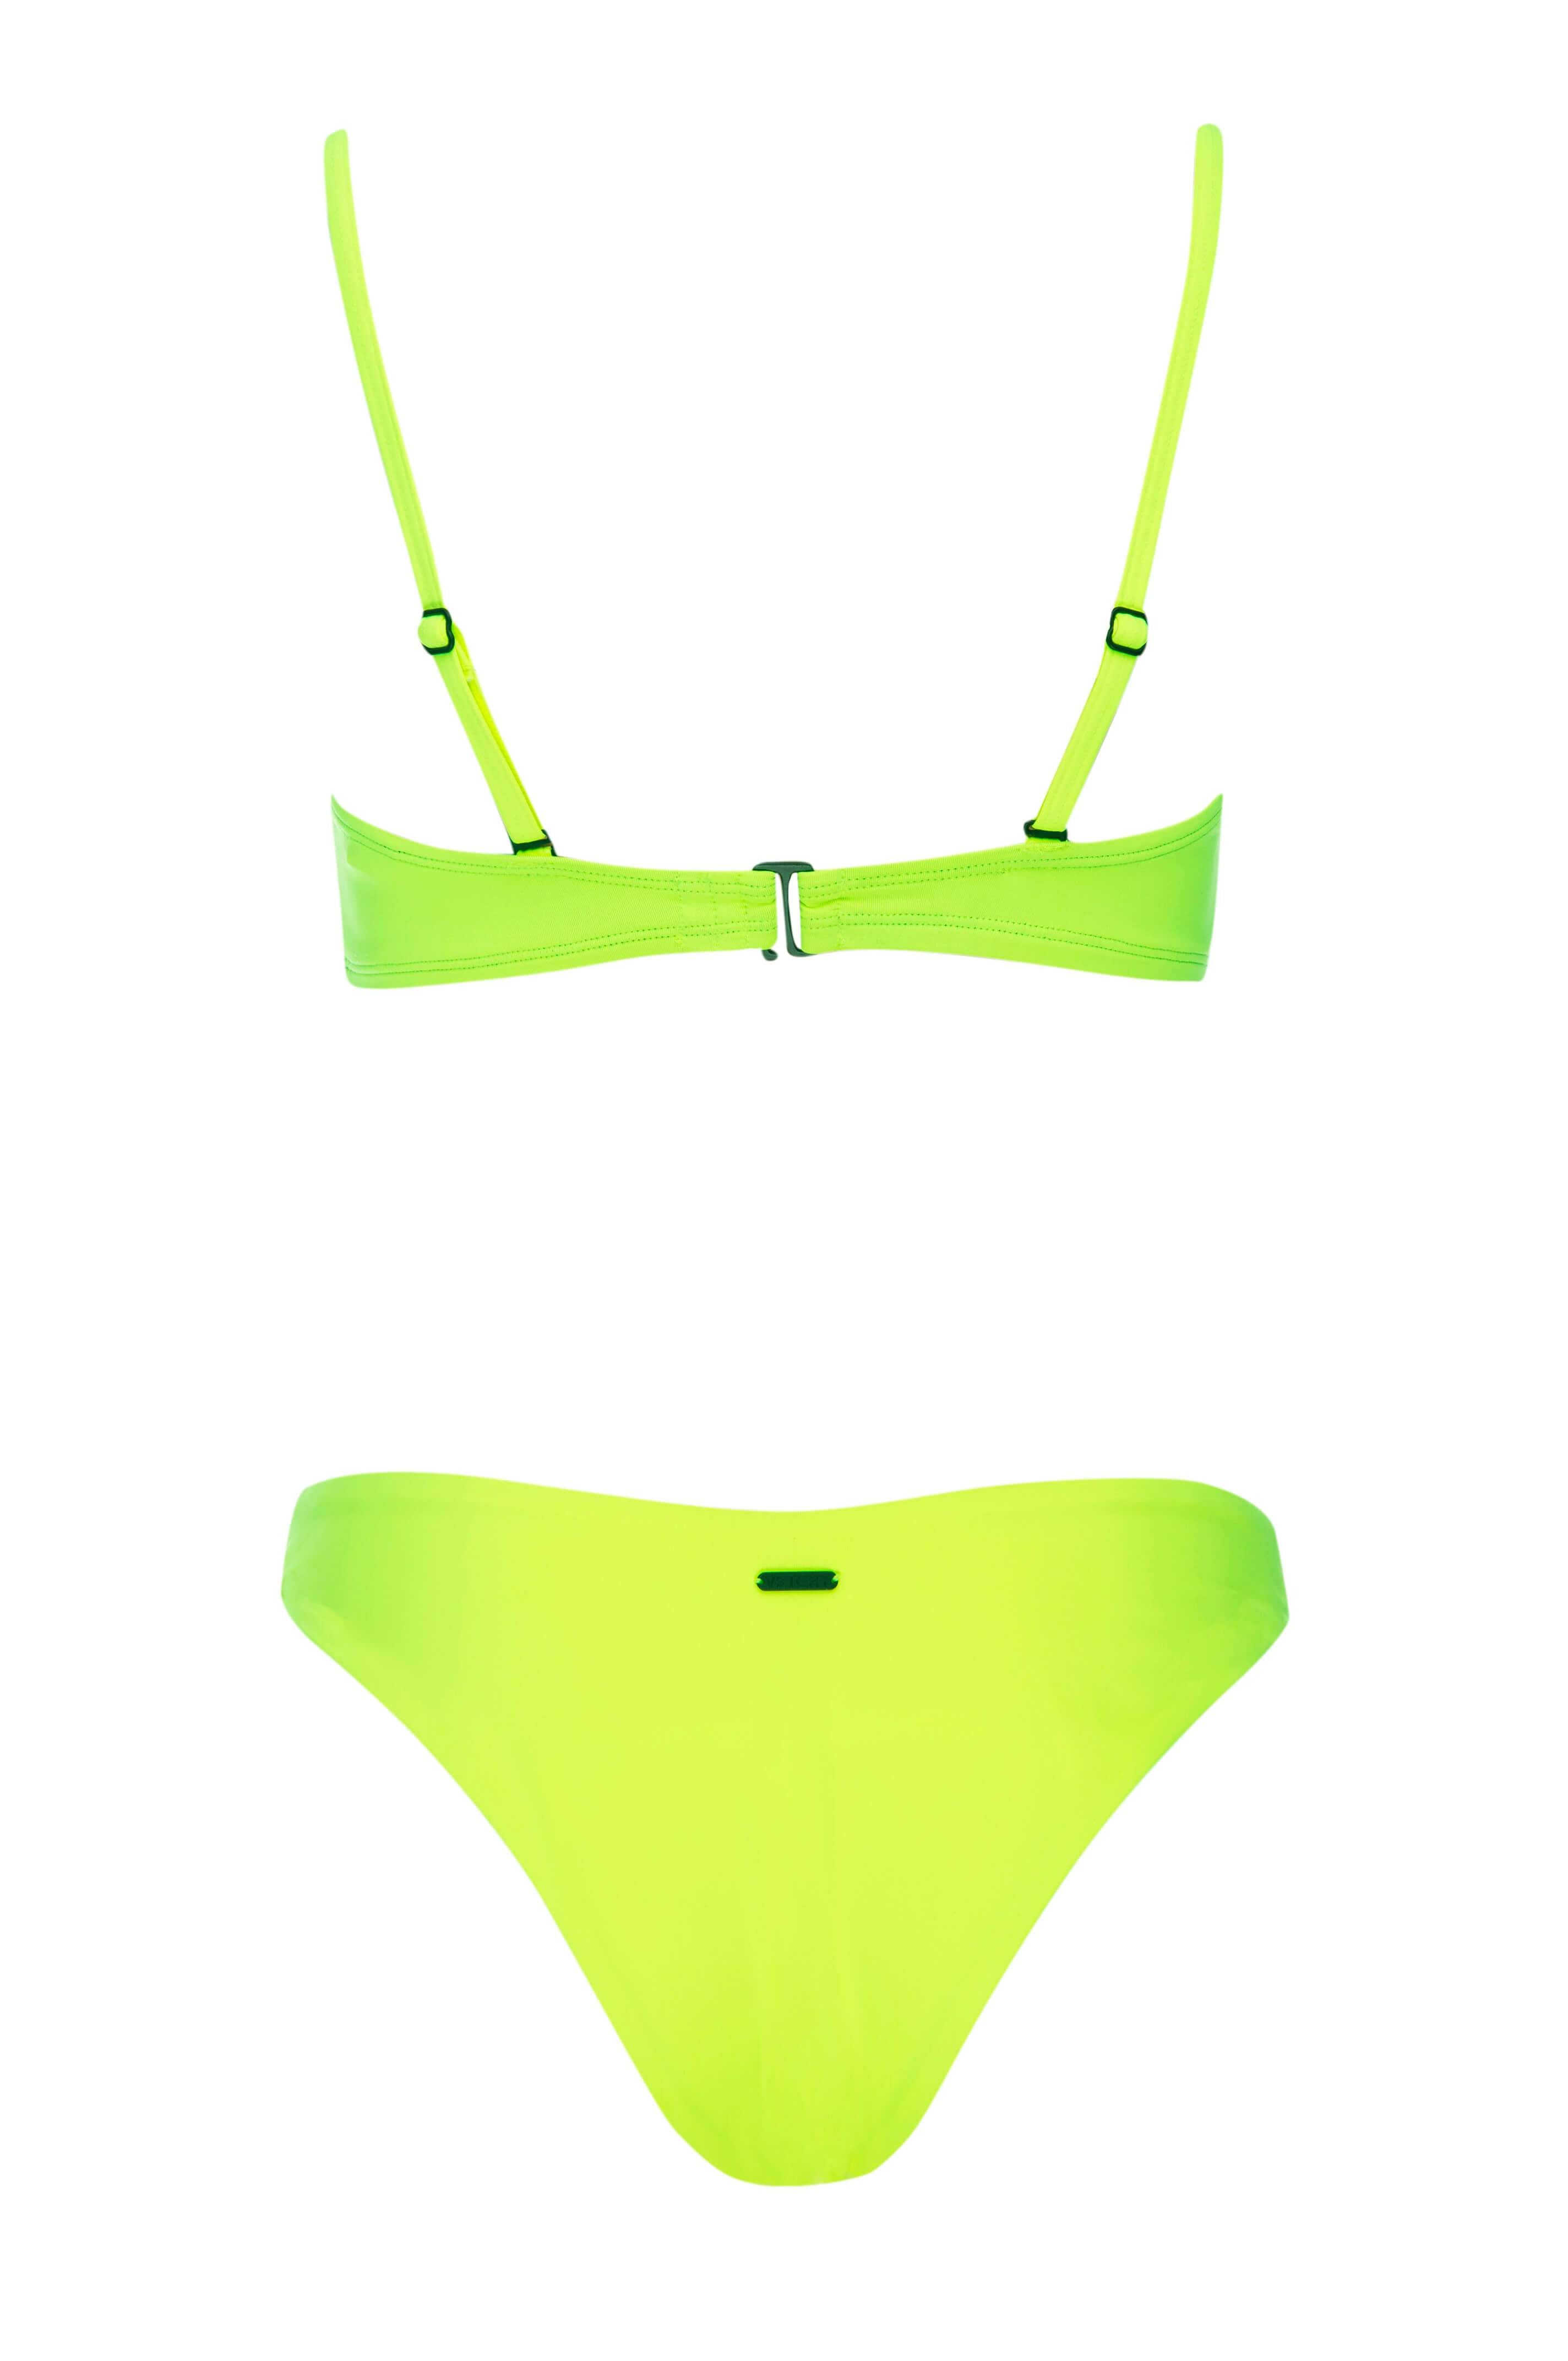 Vetchy Pool Party Balconette Bikini white background cheeky back view  this bikini is bright Neon yellow perfect for small boobs to create the illusion of bigger bust worn by celebrities on instagram